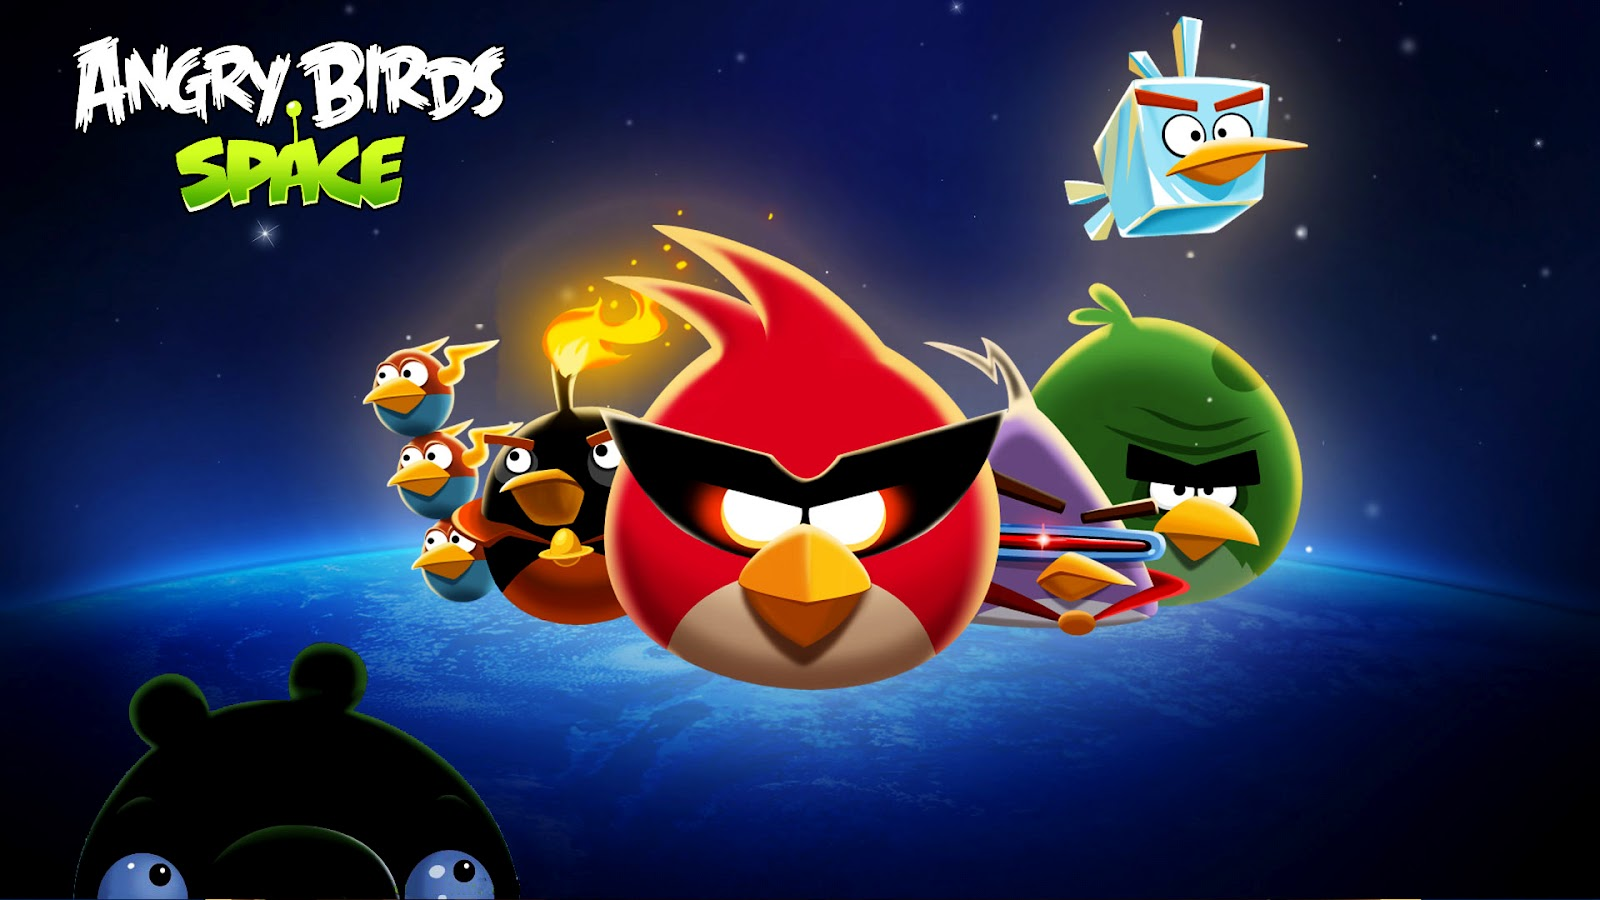 angry birds all characters - photo #39